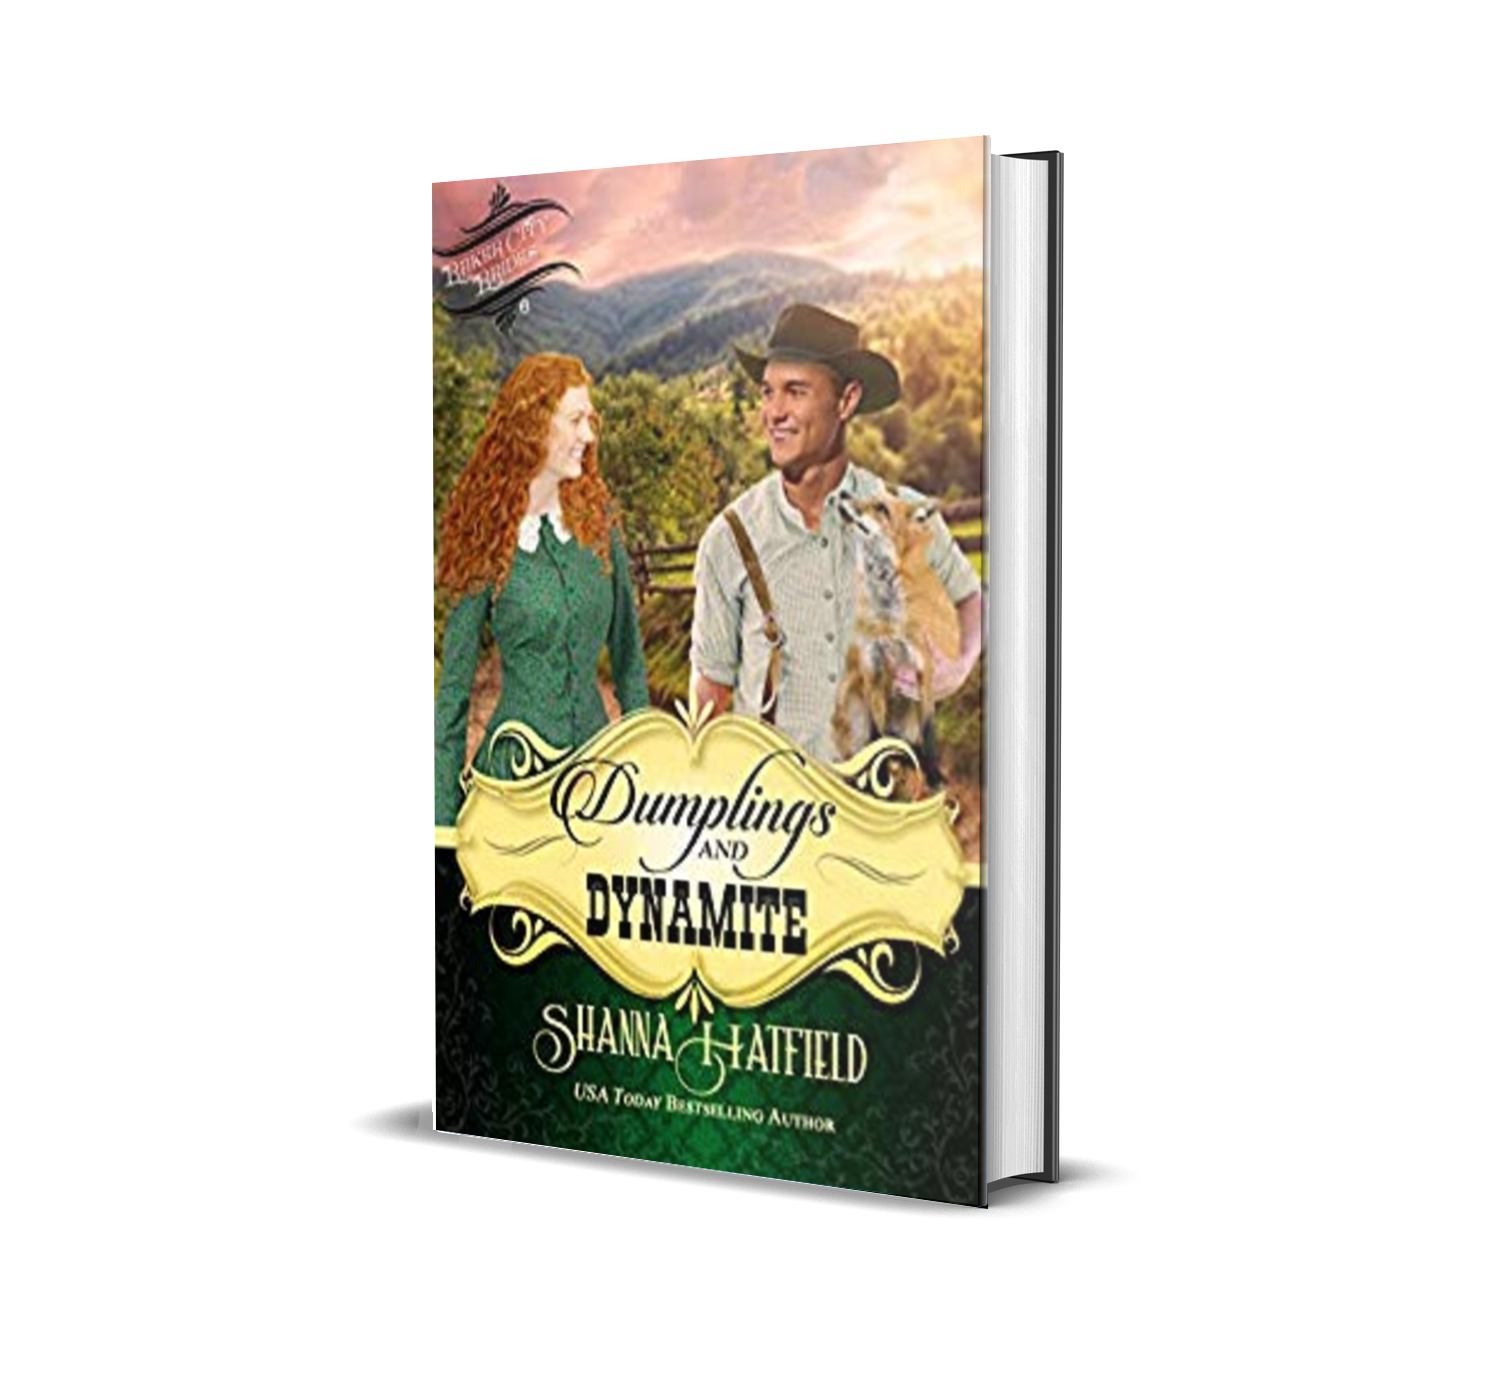 Dumplings and Dynamite by Shanna Hatfield